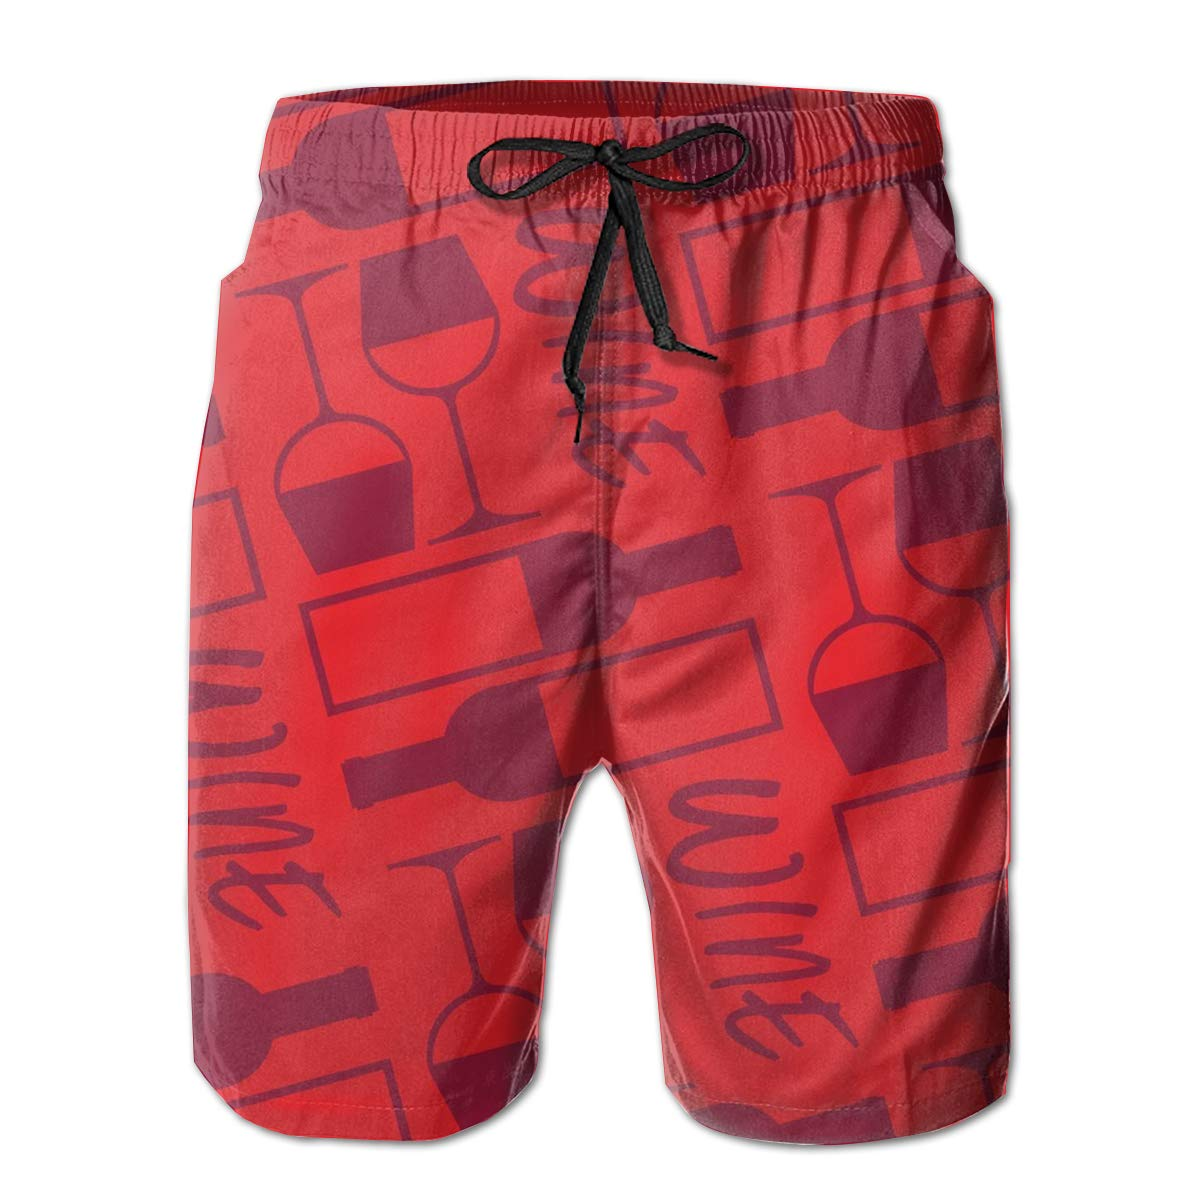 1210825a69 White ROLLING HOP HOP HOP Men's Dry Swim Trunks Red Wine Party Beach Board  Shorts for Outside Home with Pockets 69ab16